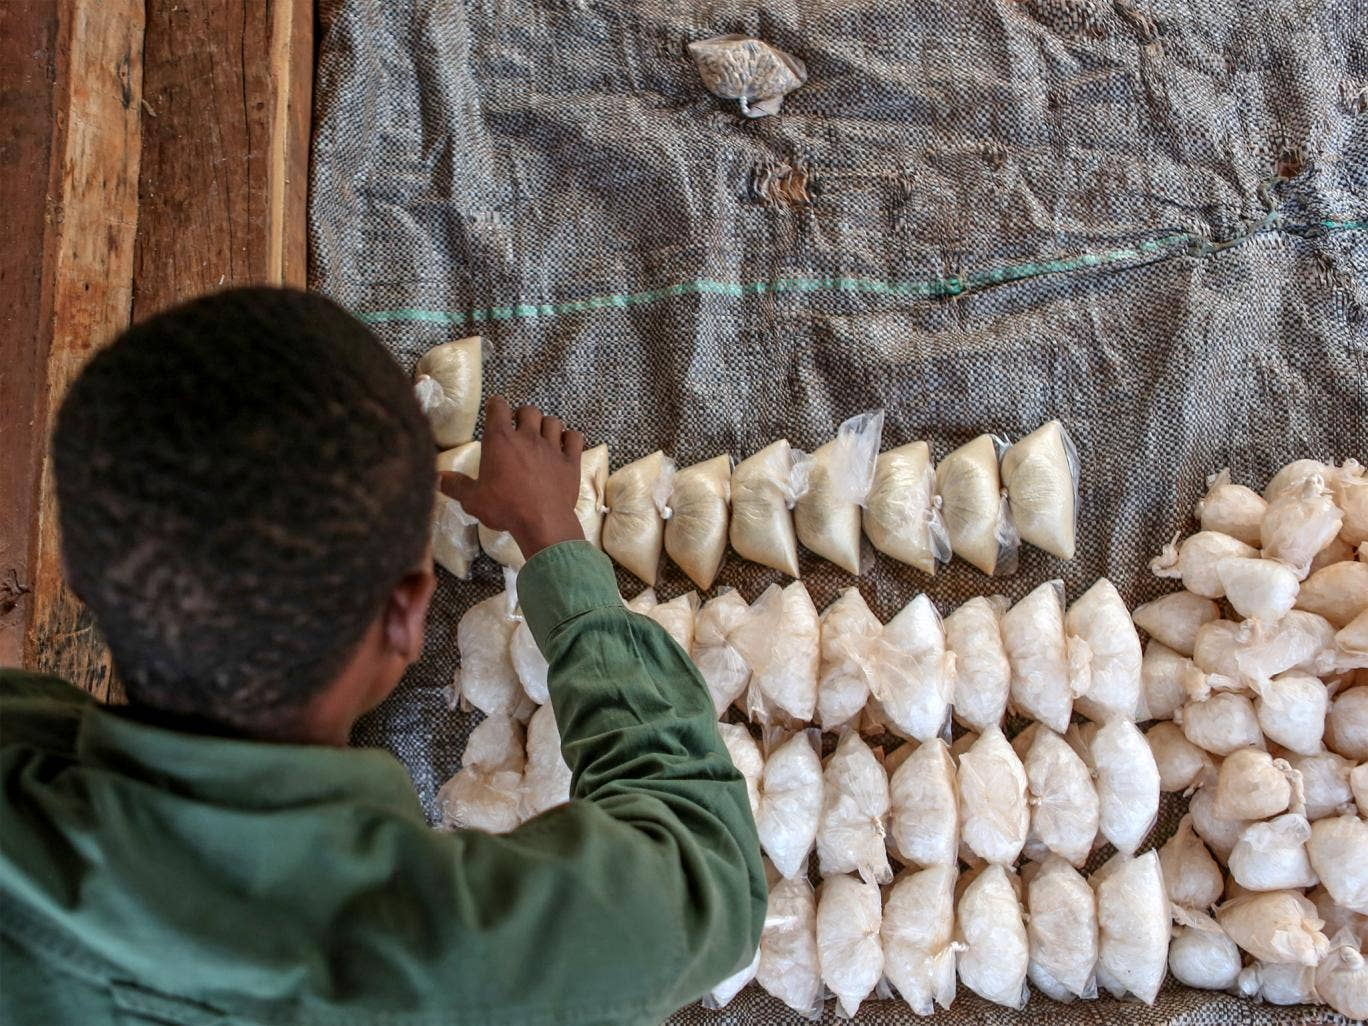 Conflict victim Abdul Kareem, 16, has a new life running his market stall thanks to Unicef support